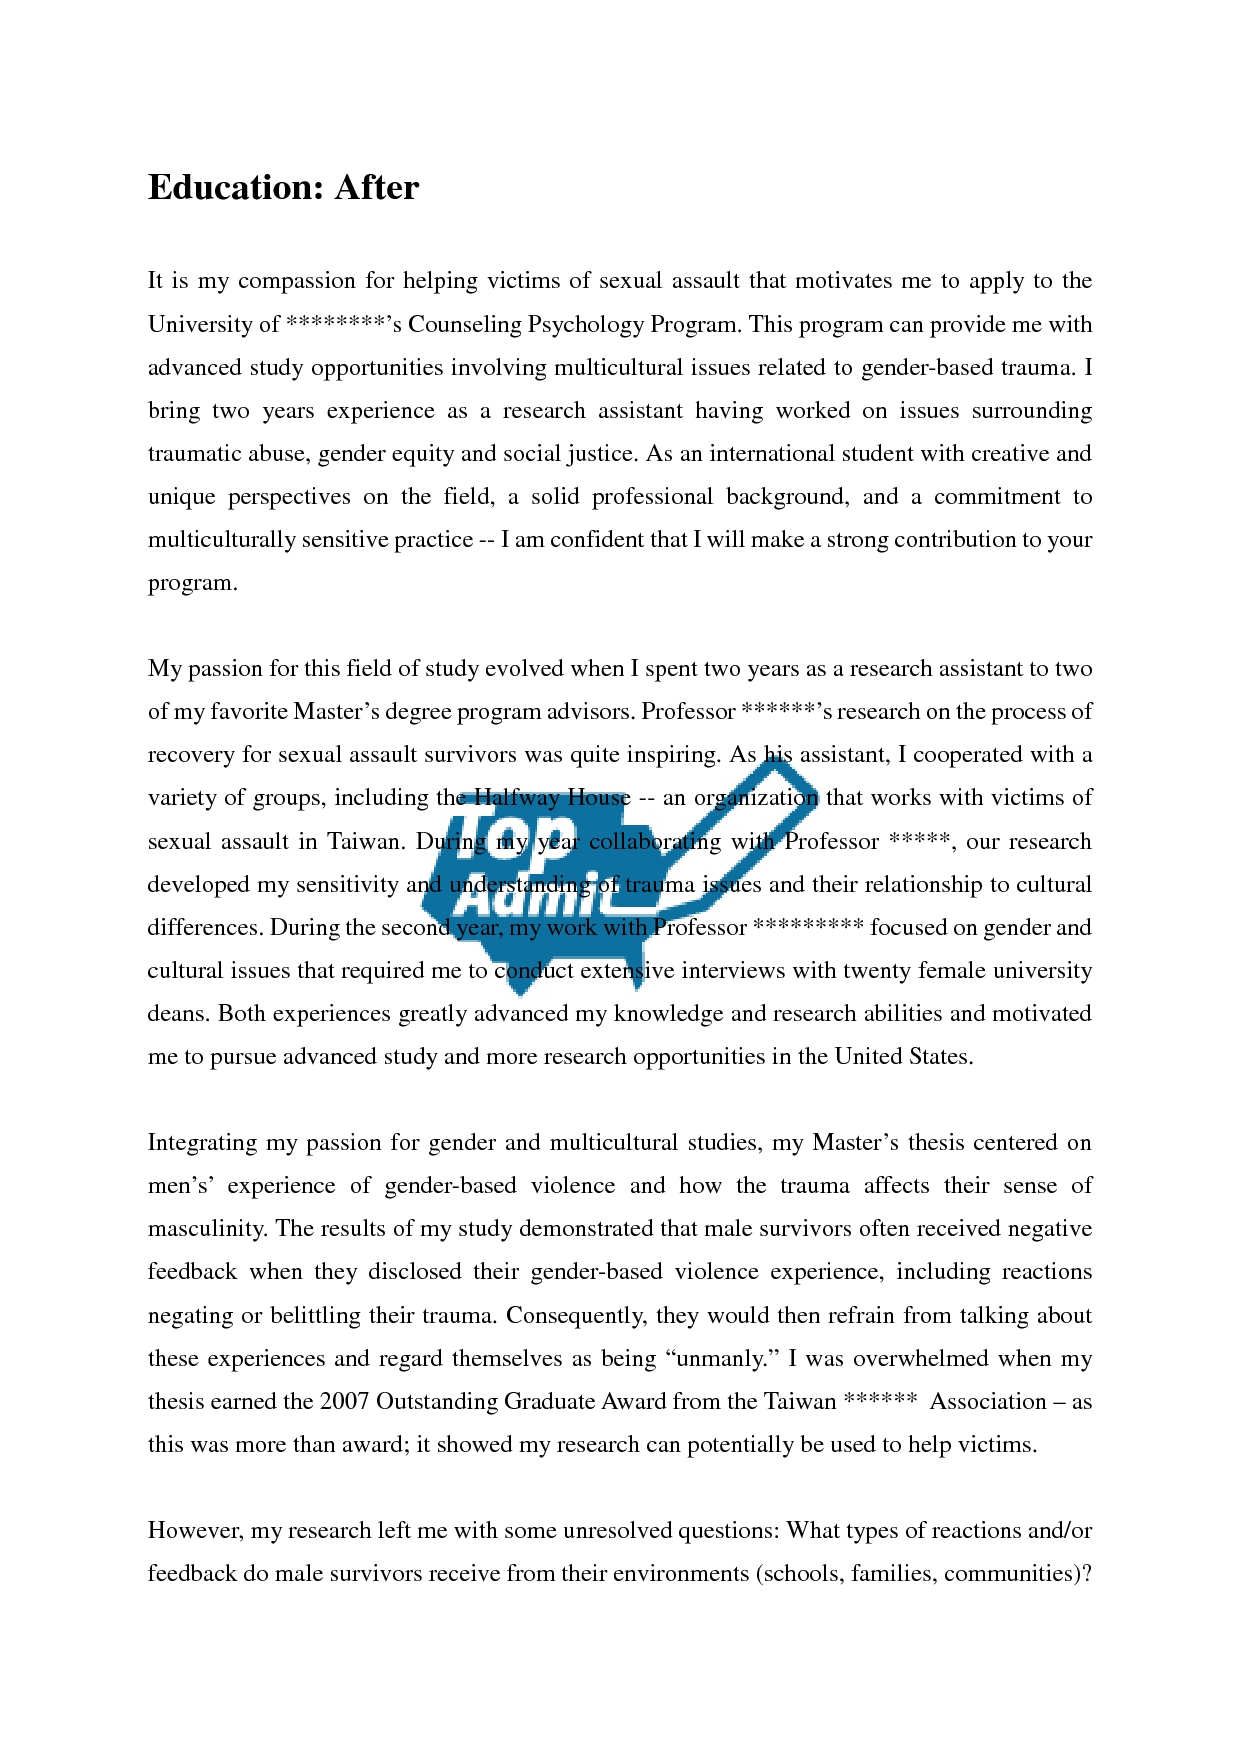 essays on high school english essay samples persuasive essay  modest proposal essay ideas persuasive essay topics for high environmental health essay be the change you want to see essay persuasive essay sample college